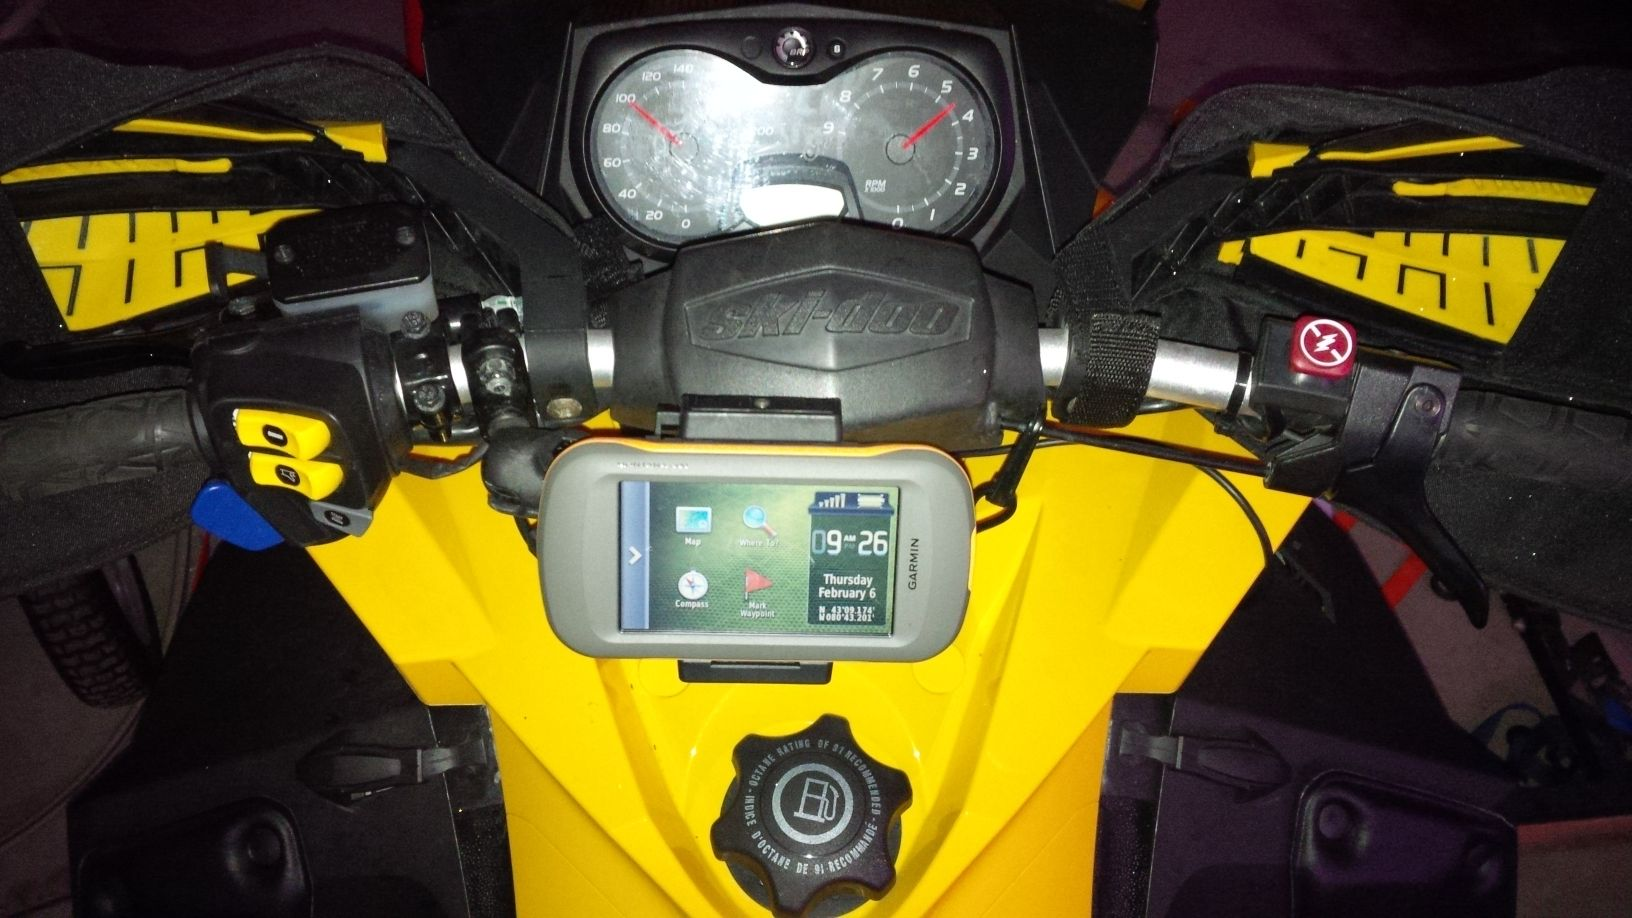 Skidoo Gps And Mount Photos Articles 2010 Ski Doo Renegade Wiring Diagram Montana On